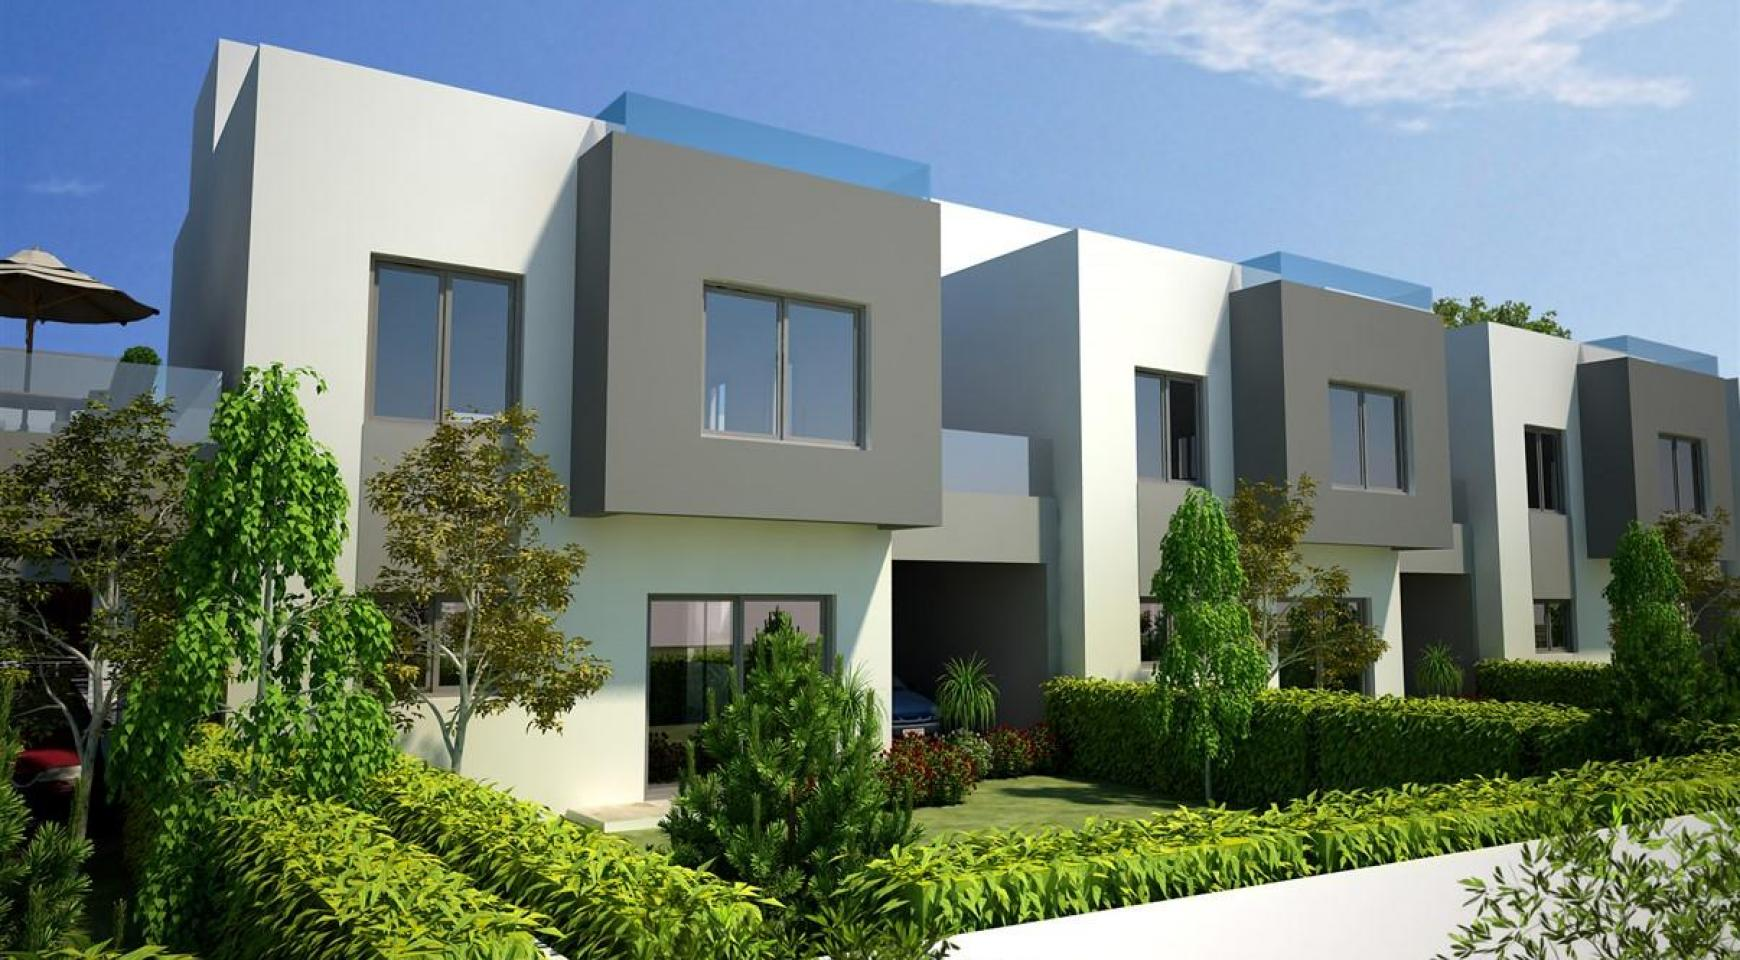 3 Bedroom Villa within a New Project - 32